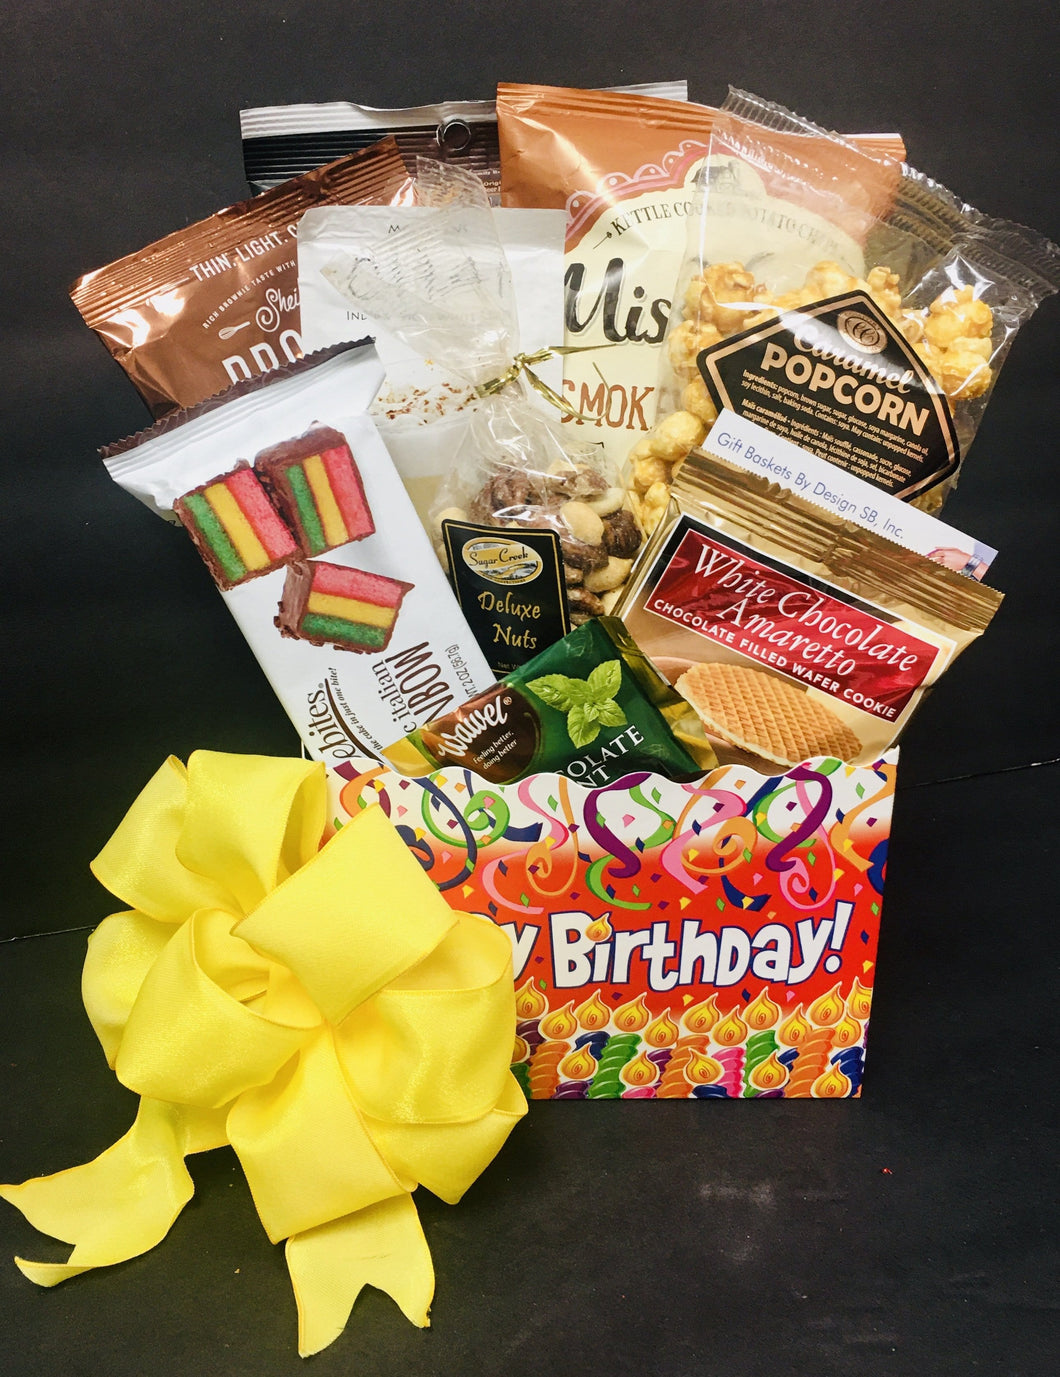 Birthday Celebration-3 Sizes - Gift Baskets By Design SB, Inc.